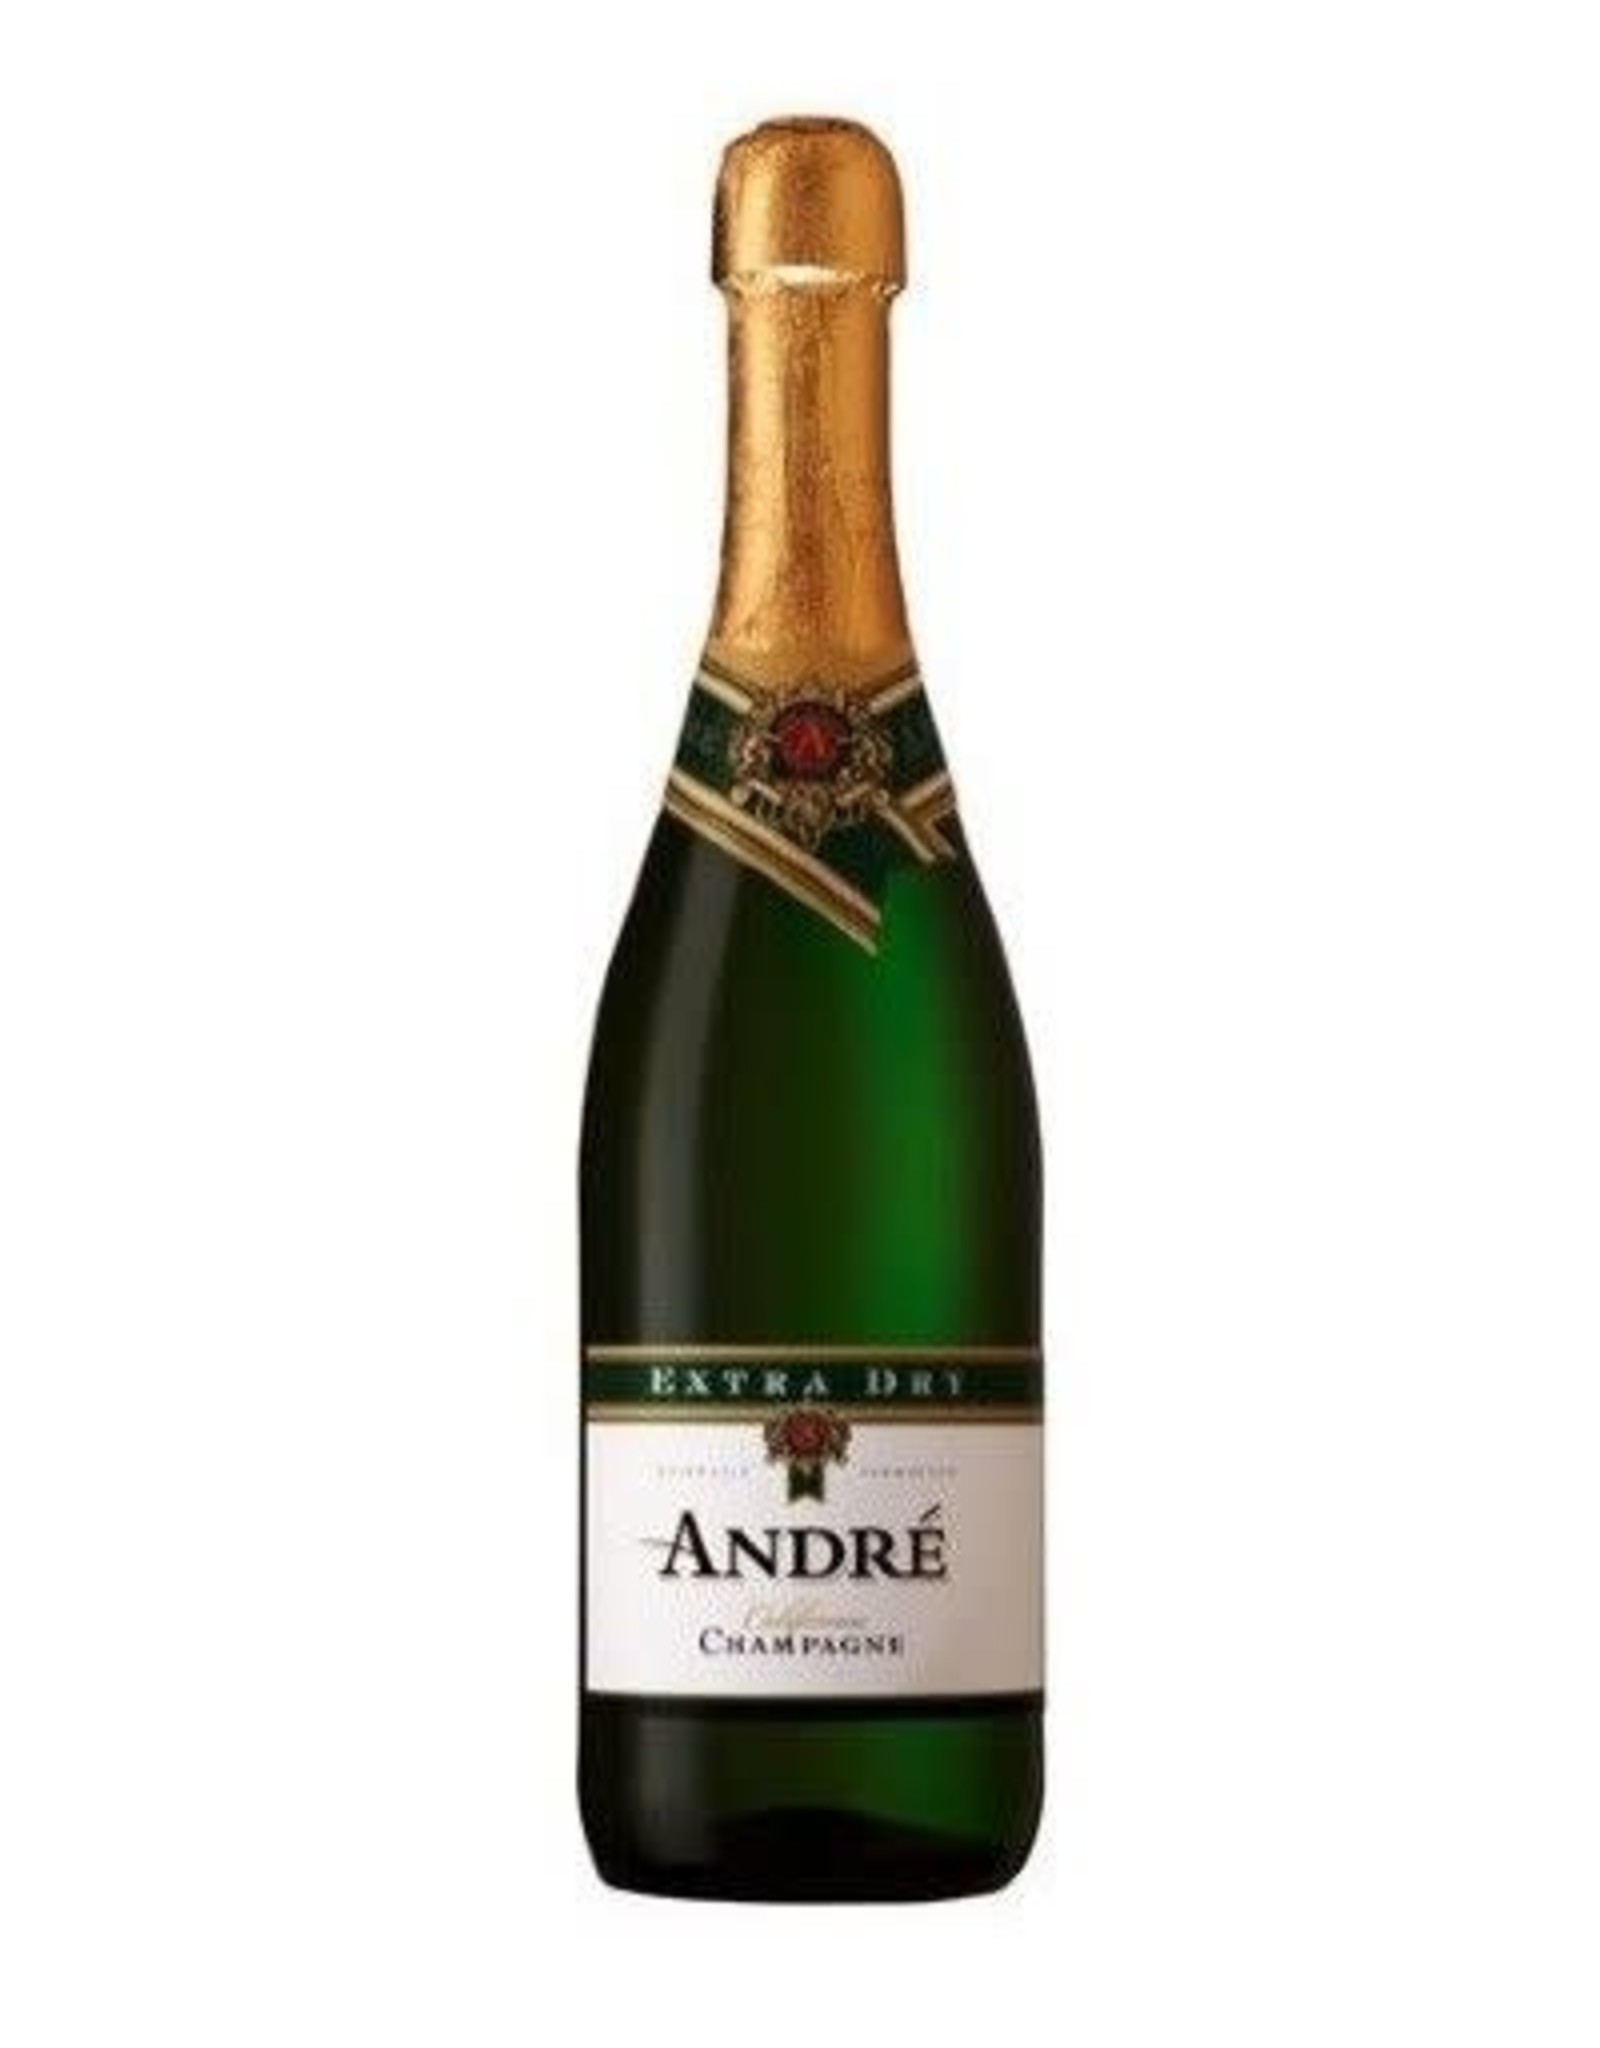 ANDRE EXTRA DRY CHAMPAGNE 750ml